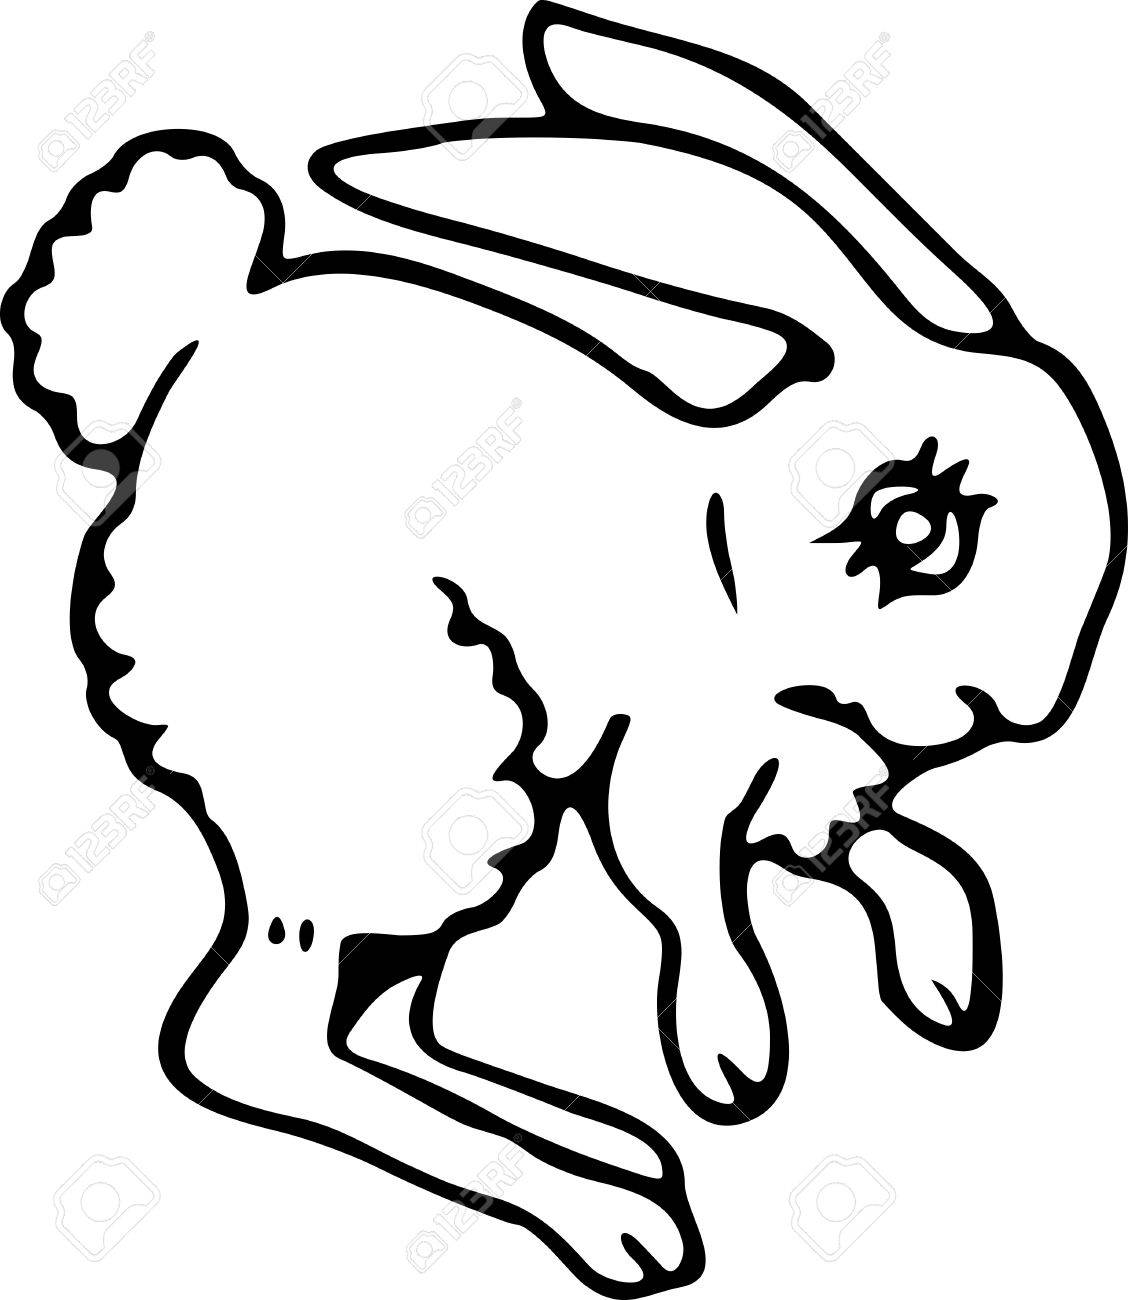 1128x1300 Simple Black And White Line Drawing Of A Cartoon Bunny Rabbit